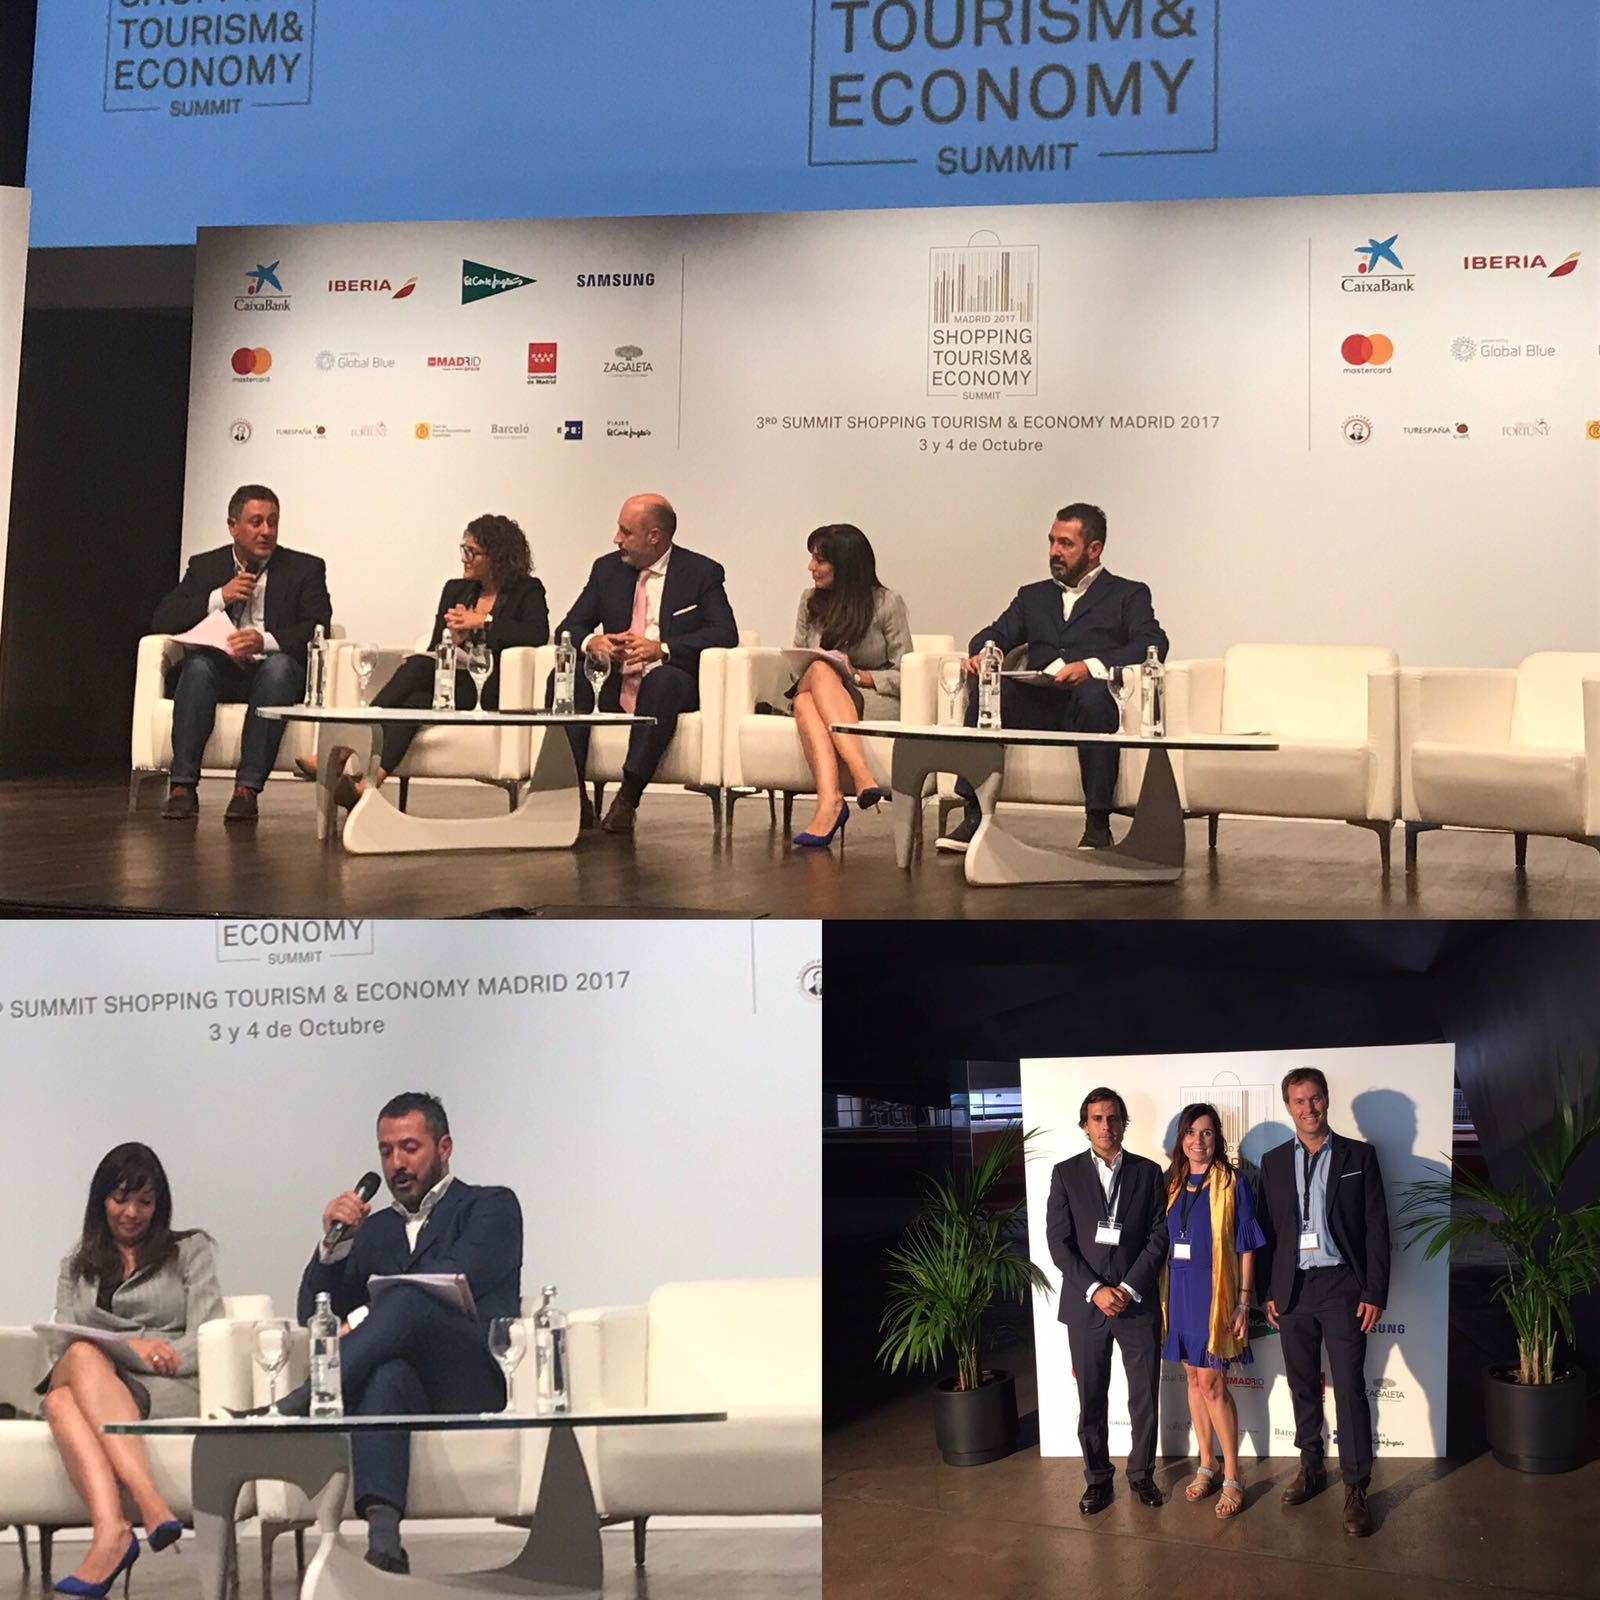 3rd Summit Shopping Tourism & Economy Madrid 2017